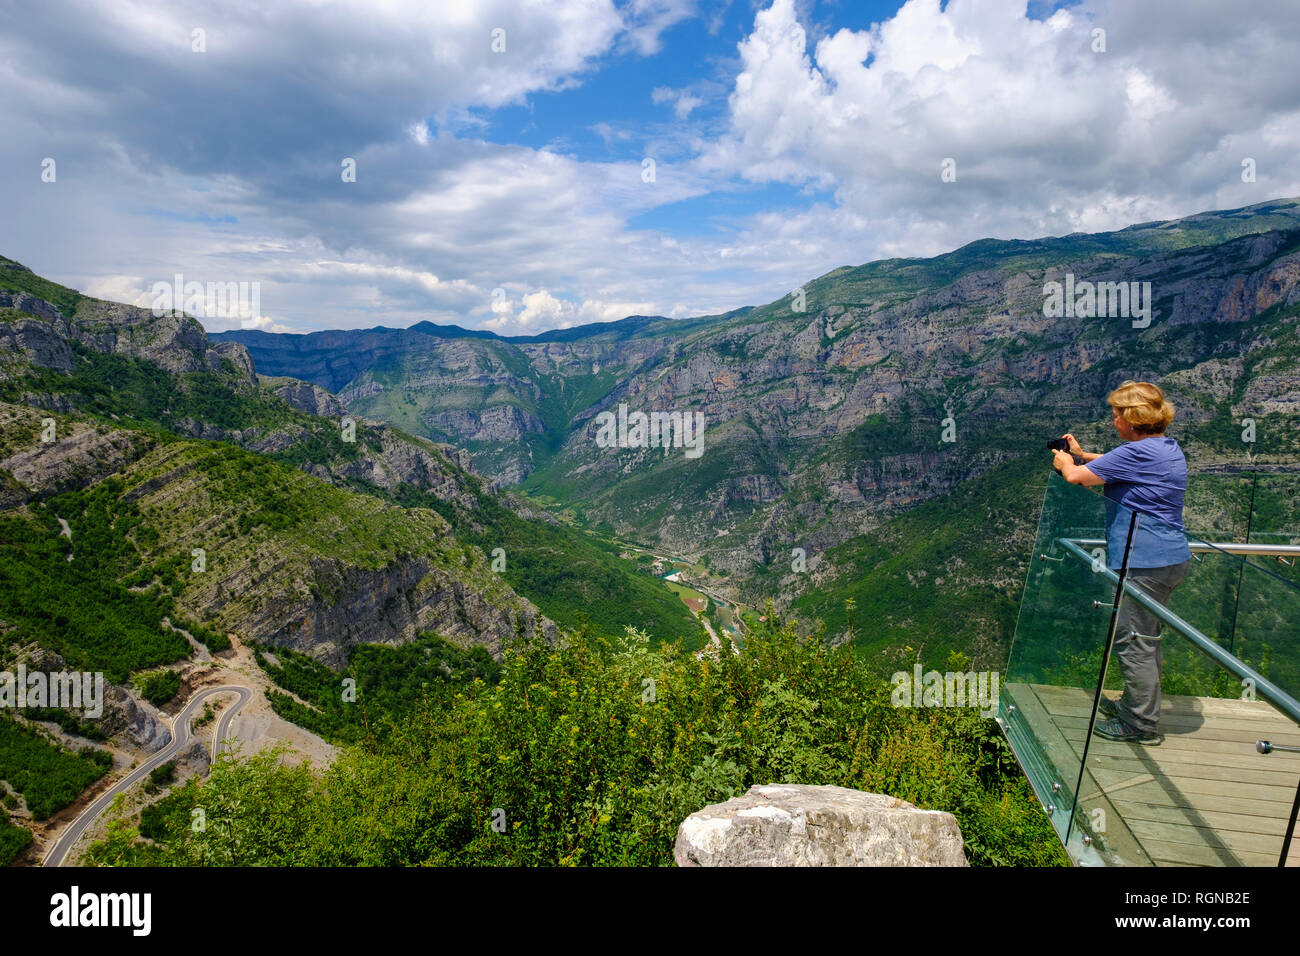 Albania, Shkoder County, Albanian Alps, Cem Canyon, observation point, hiker photographing - Stock Image